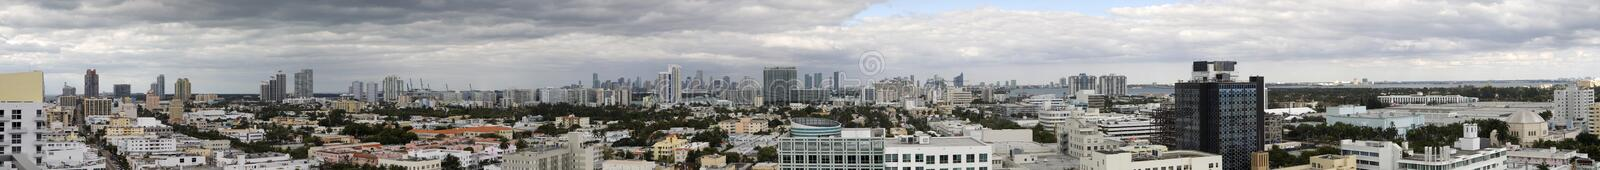 Miami Panorama Stock Photo